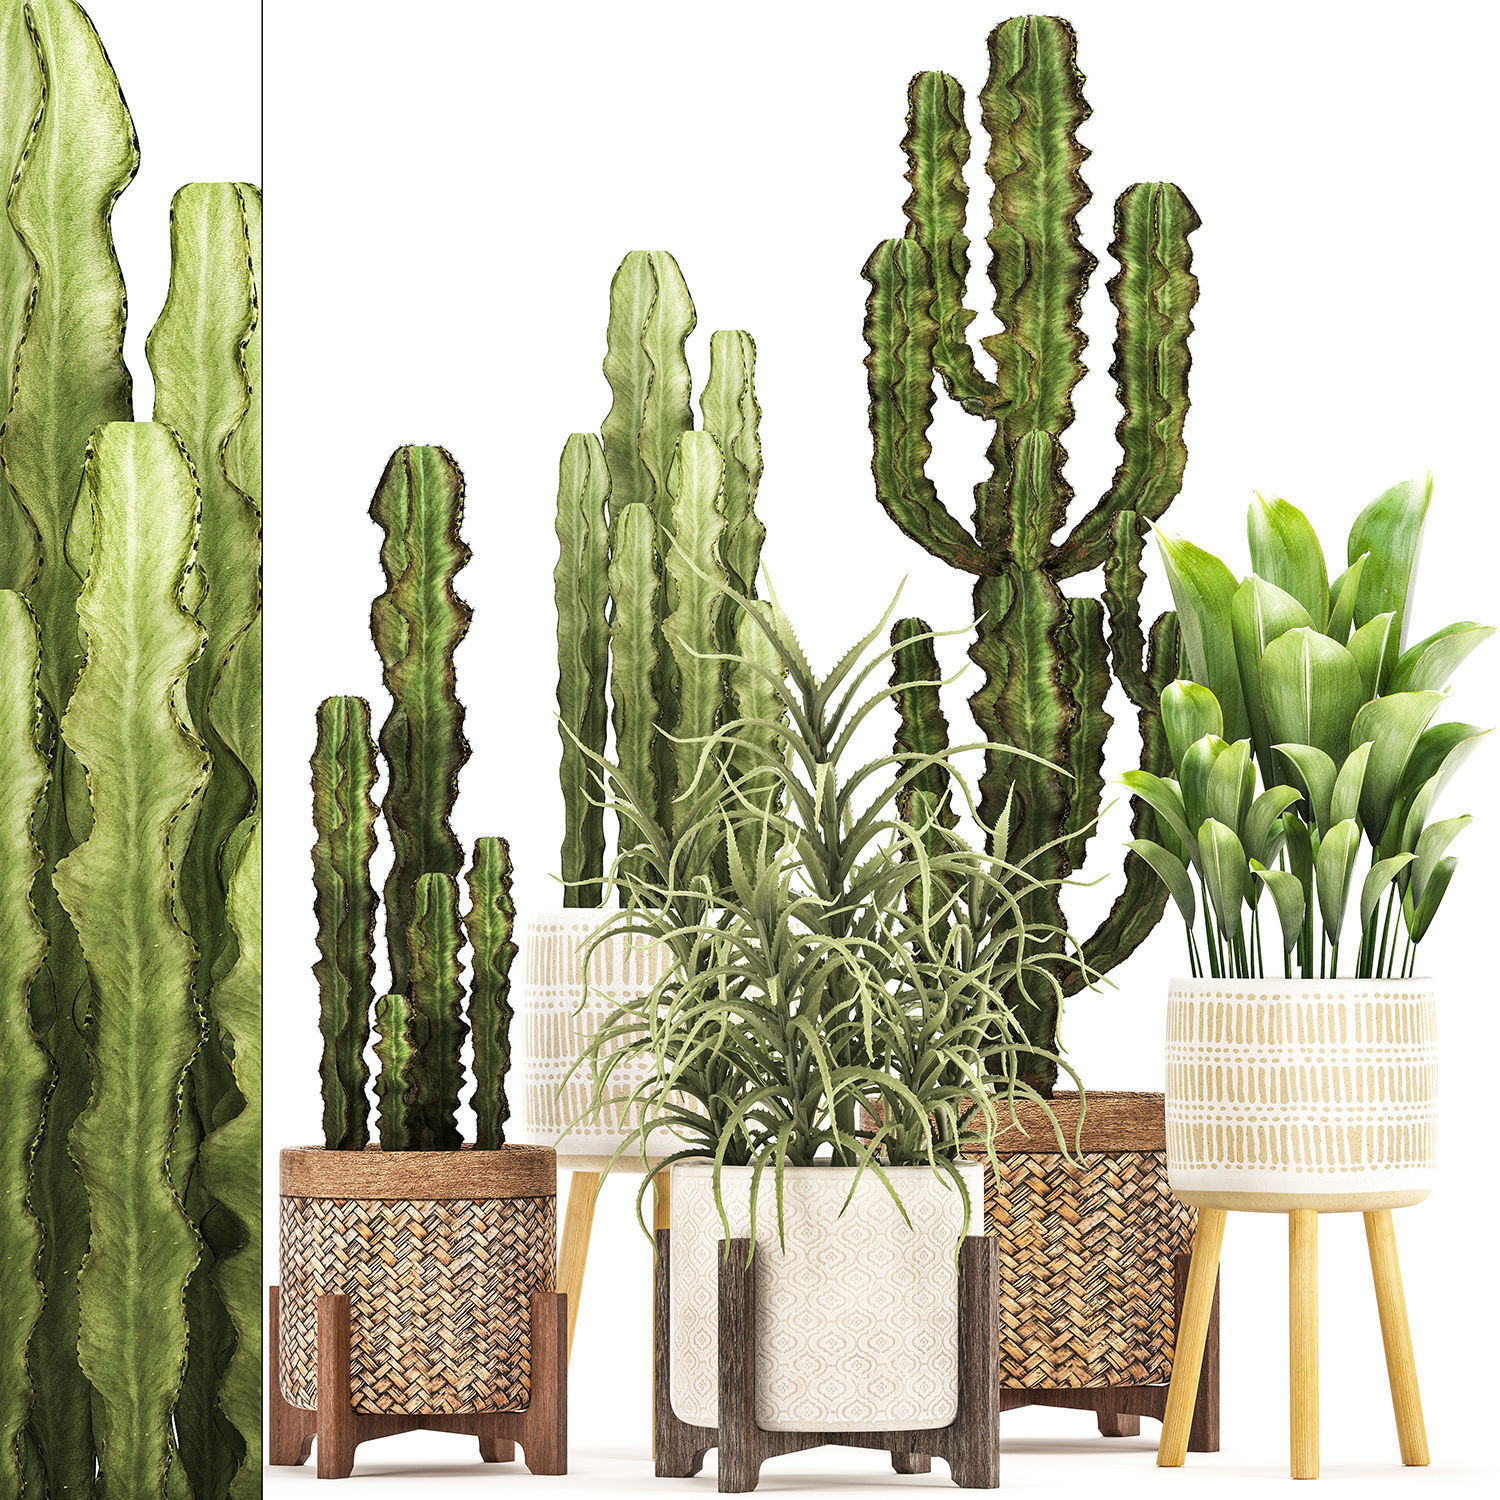 Collection of Exotic Cactus Plants 7